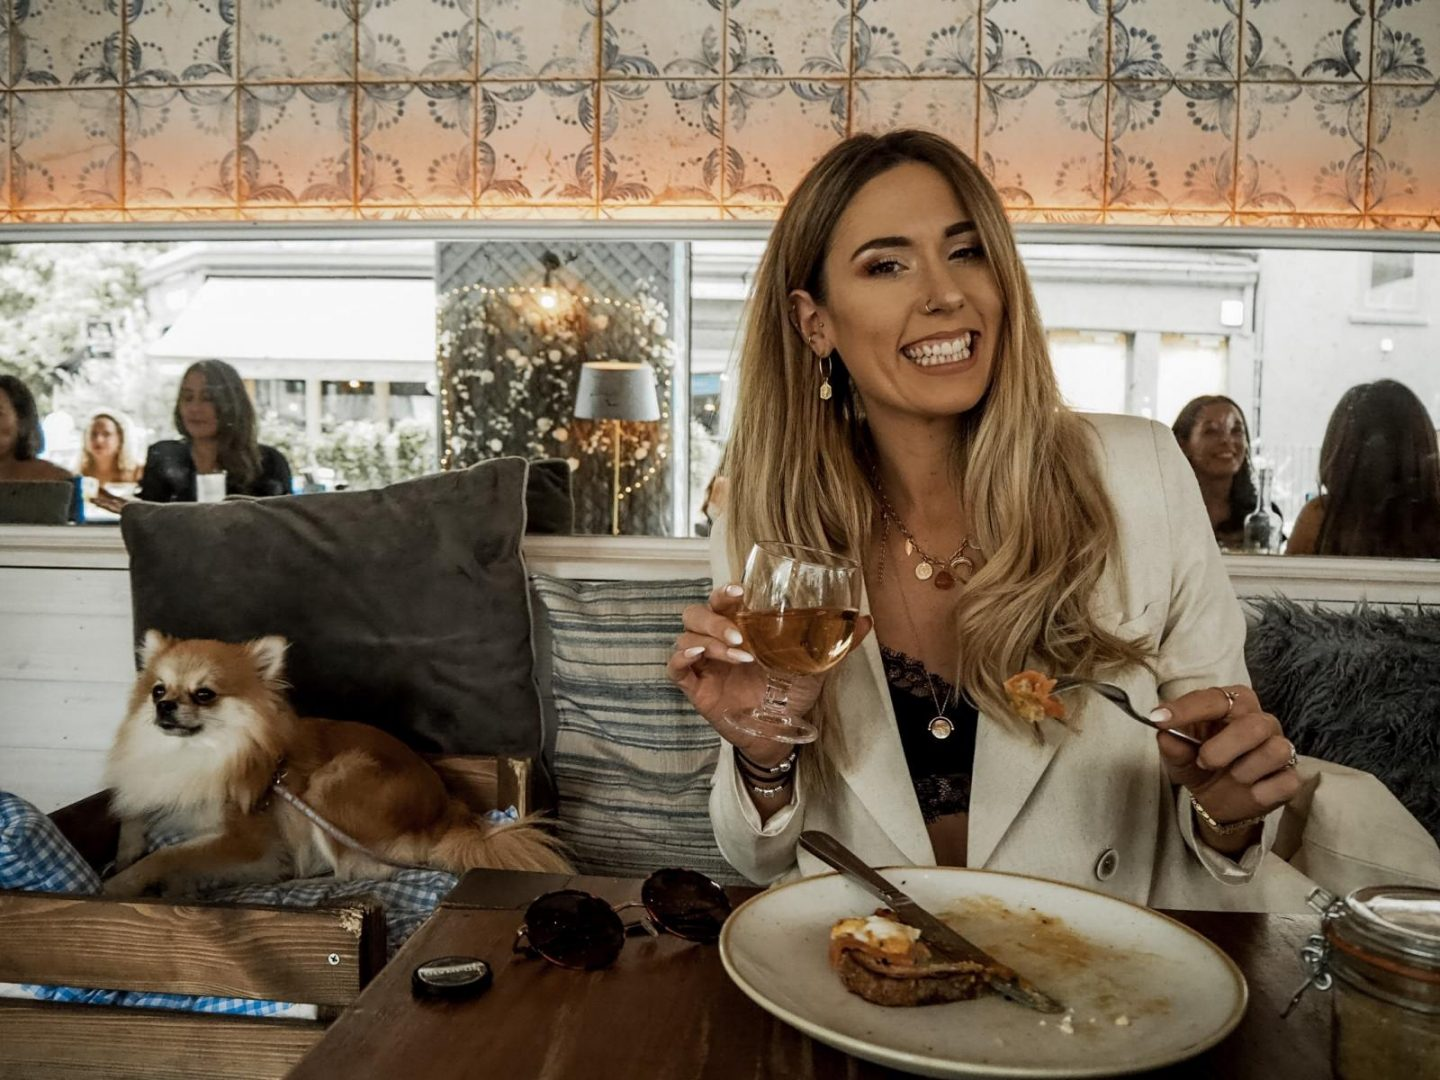 London blogger dining with your dog - brunch at Megan's restaurant